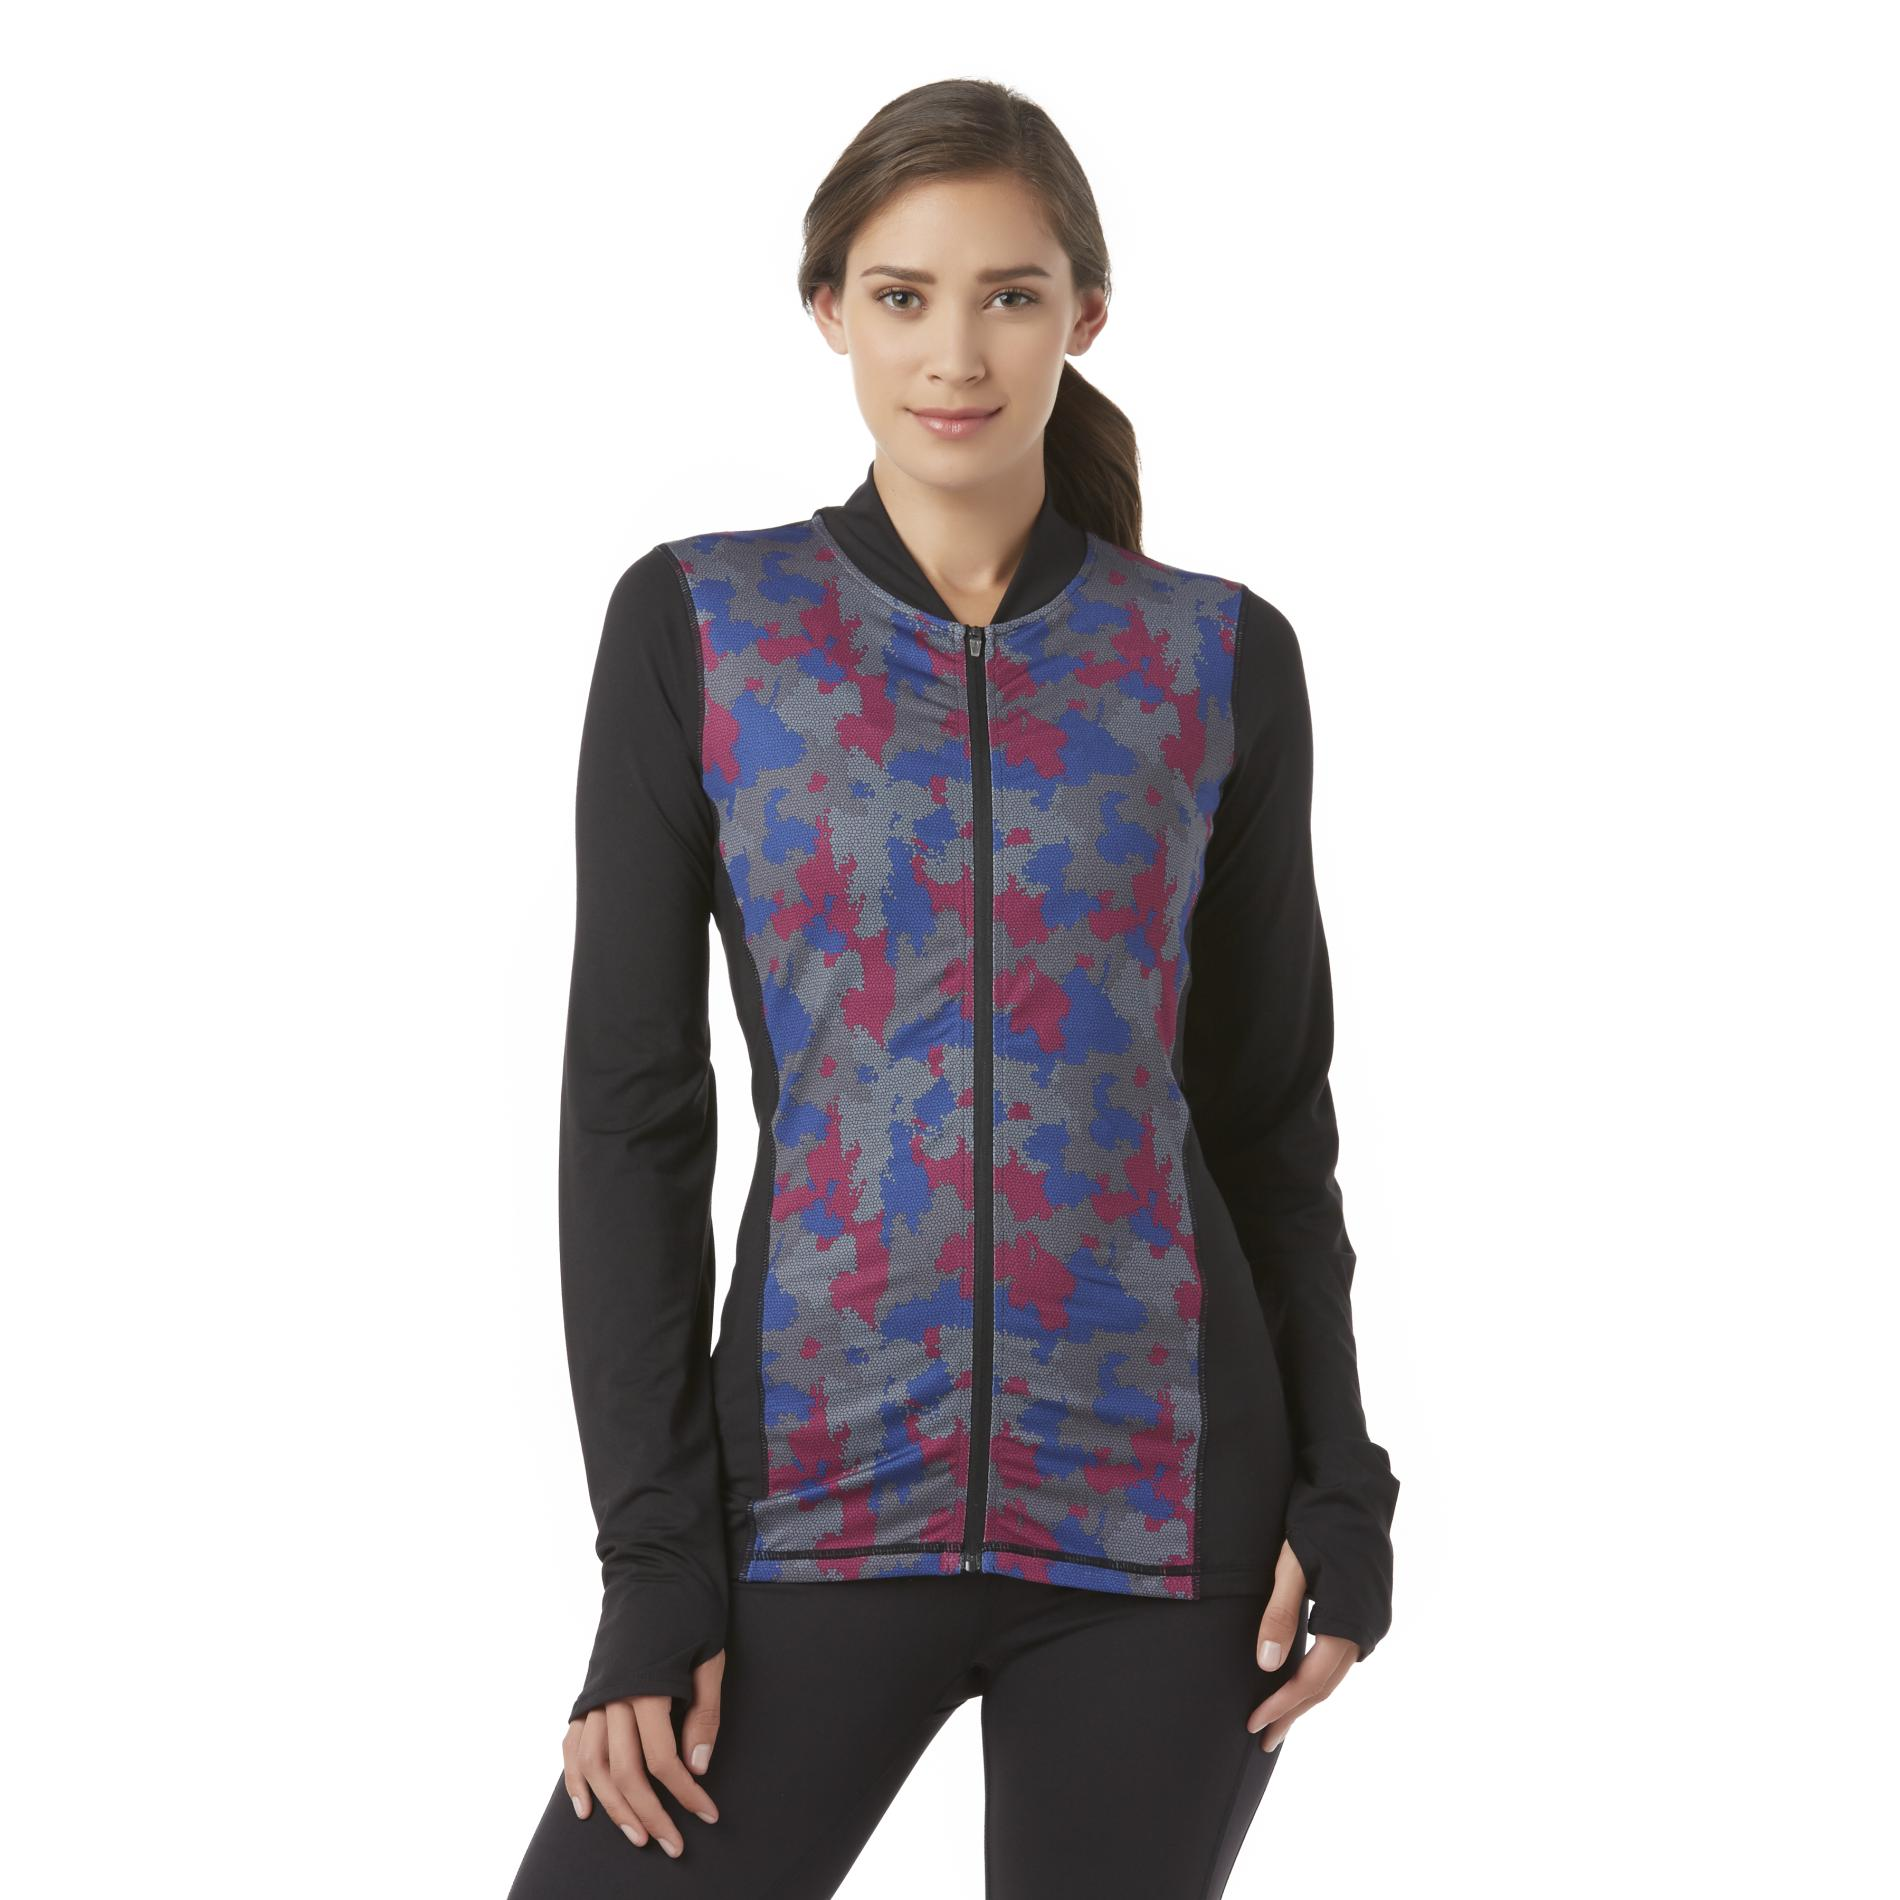 Everlast® Sport Women's Compression Jacket - Abstract PartNumber: 027VA90893912P MfgPartNumber: WF6EV74107MI